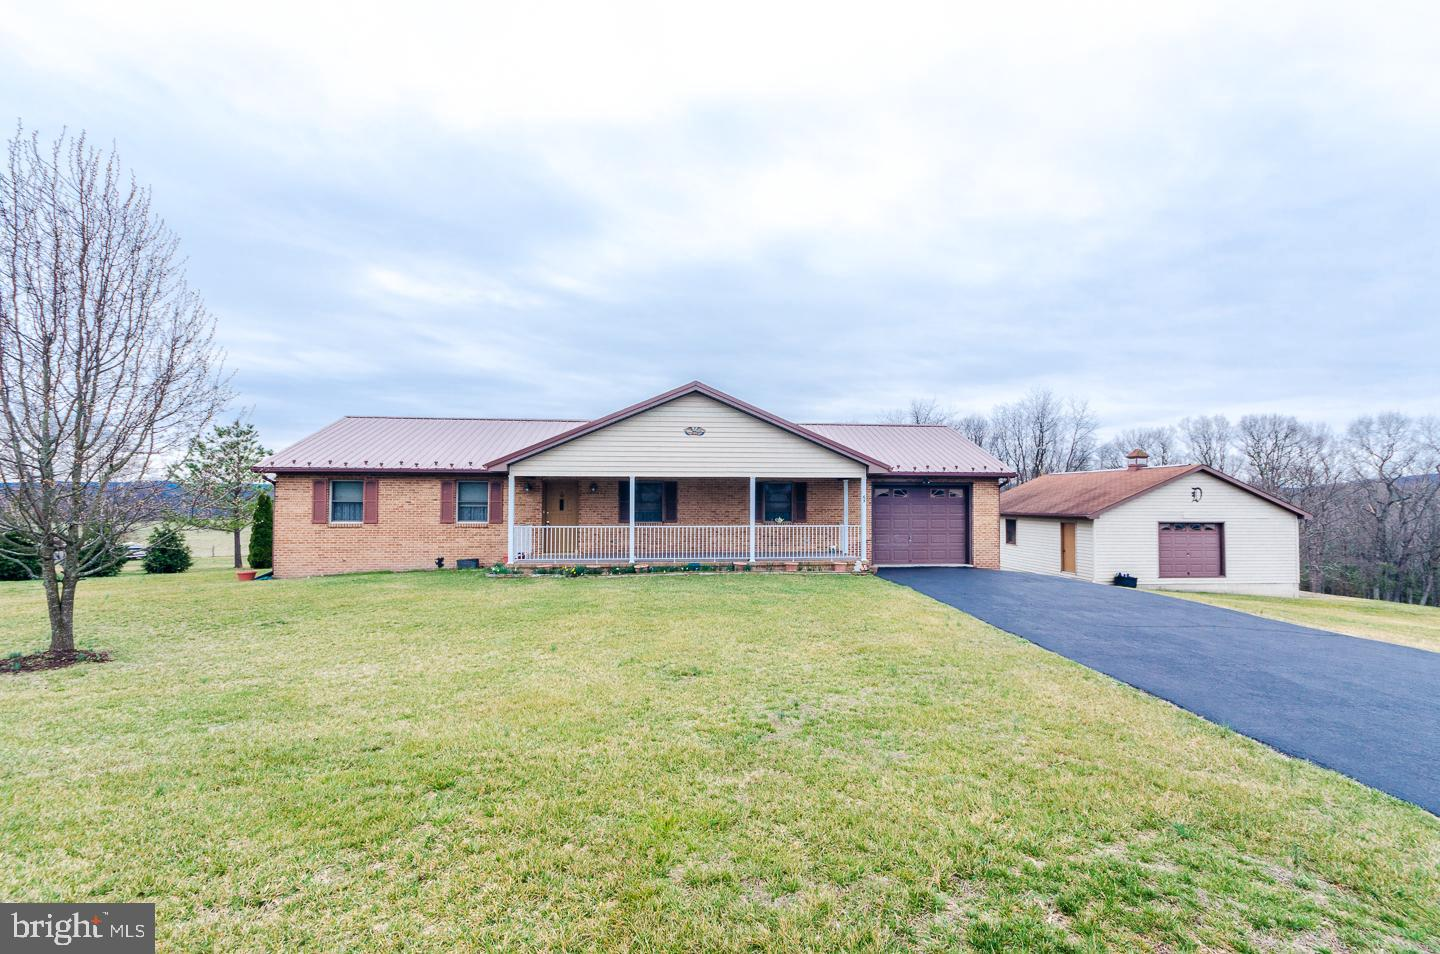 65 SUNSET DRIVE, AUGUSTA, WV 26704